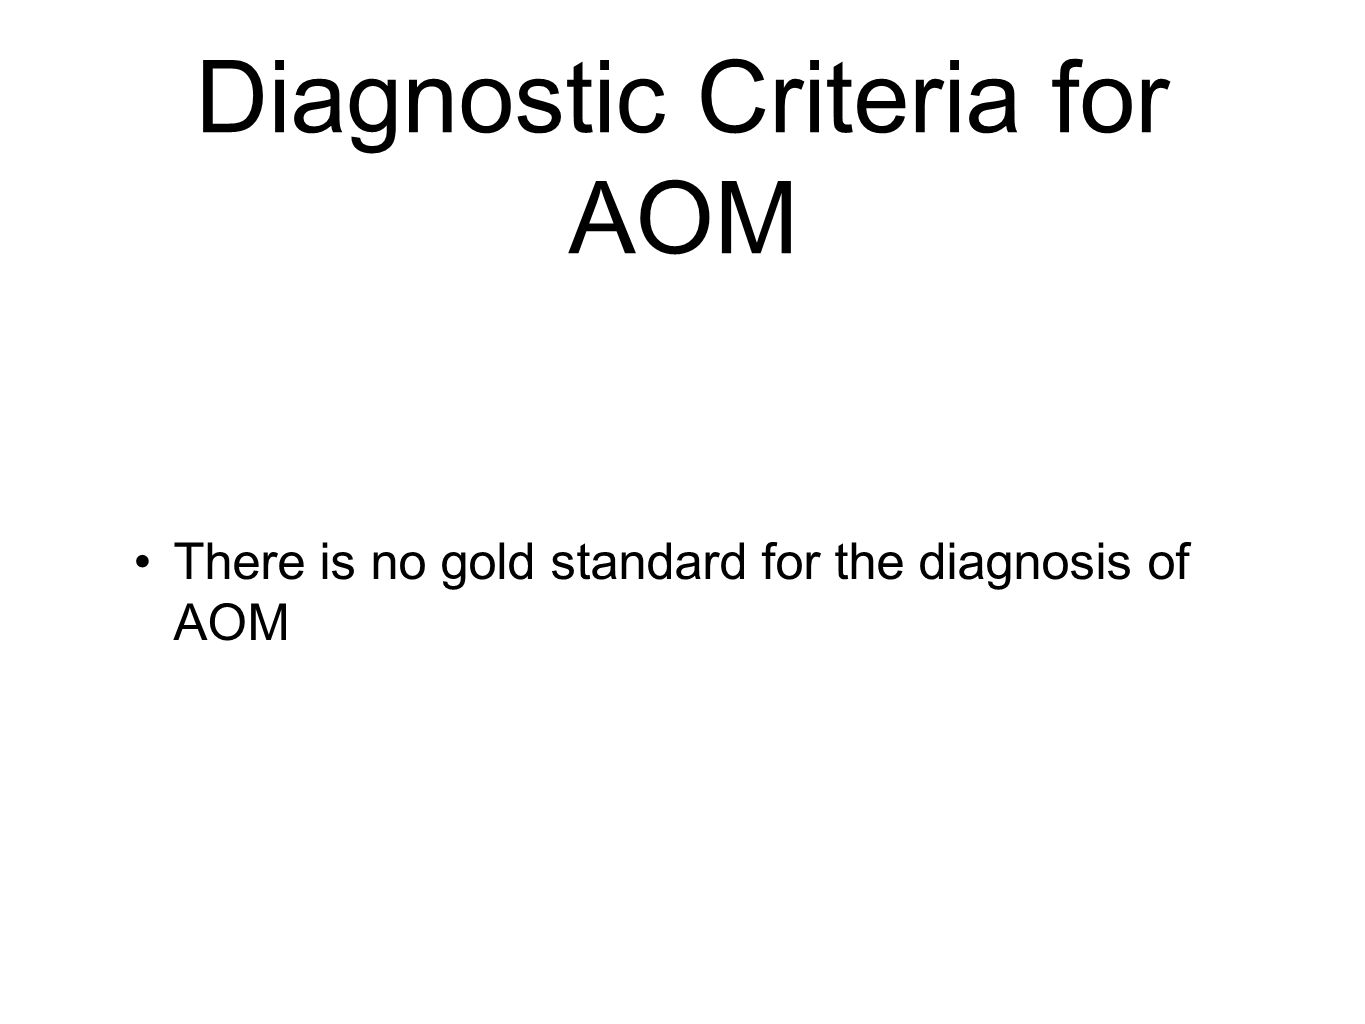 Diagnostic Criteria for AOM